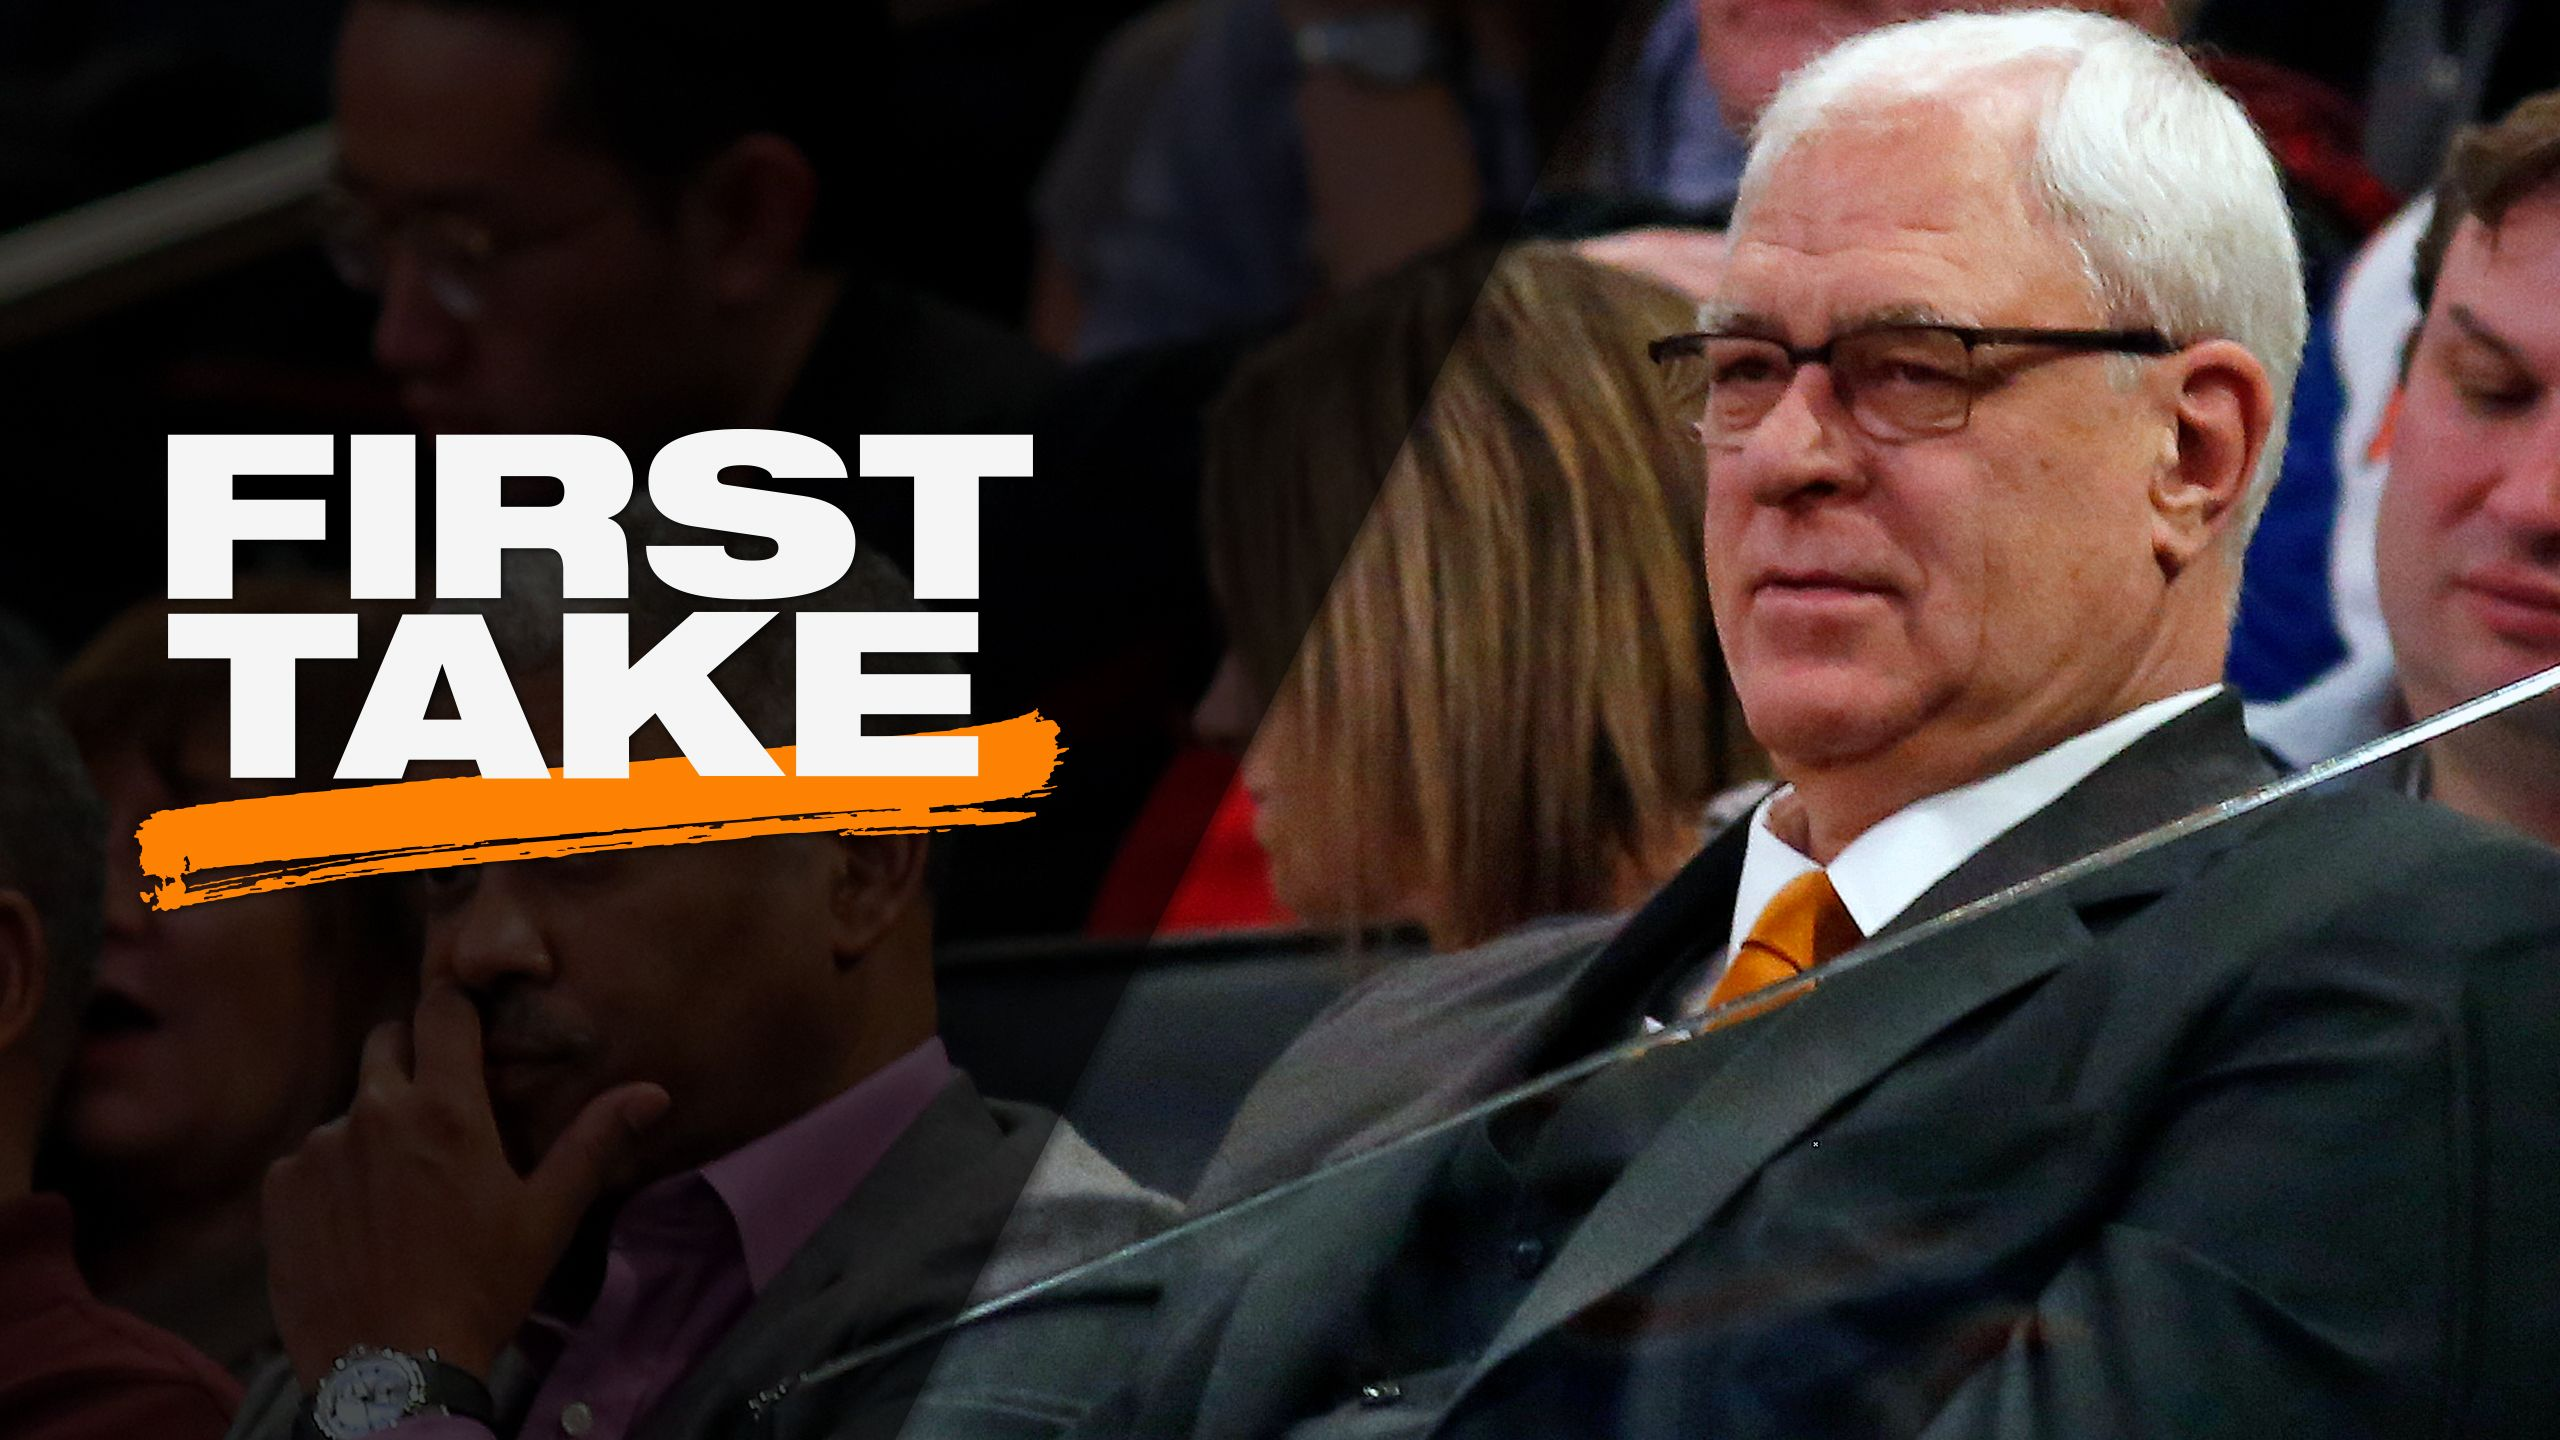 First Take Presented by Bai